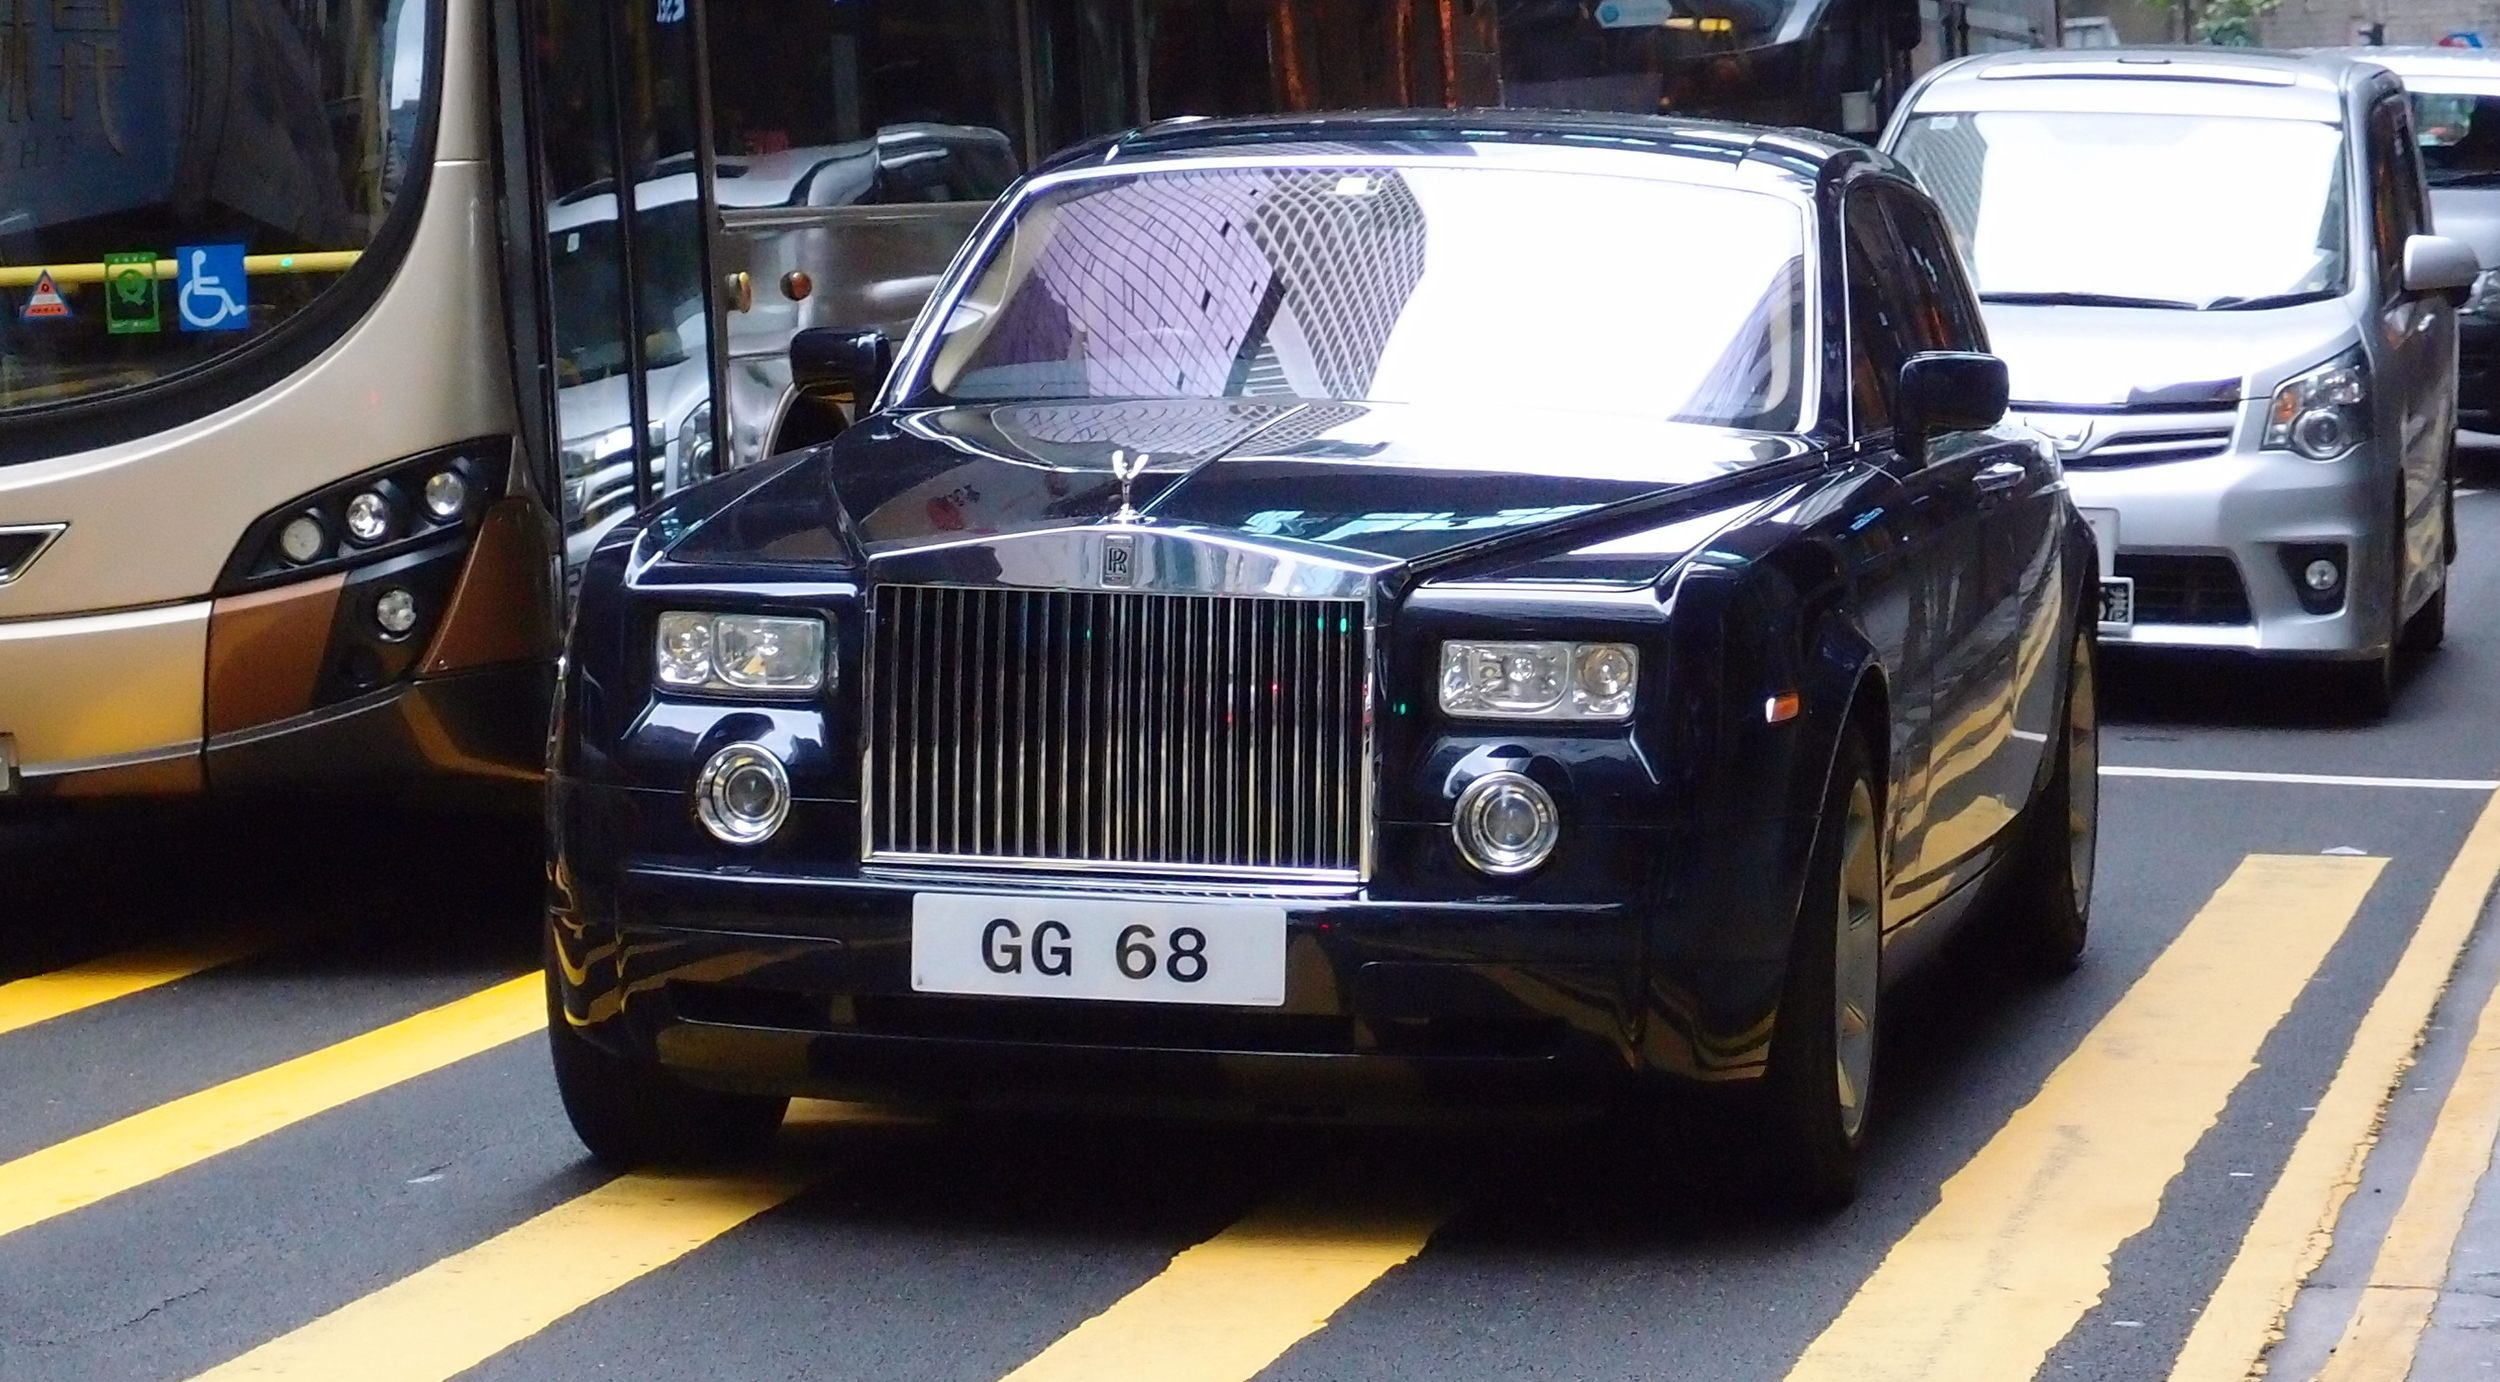 A somewhat staid Rolls Royce with the lucky number plate